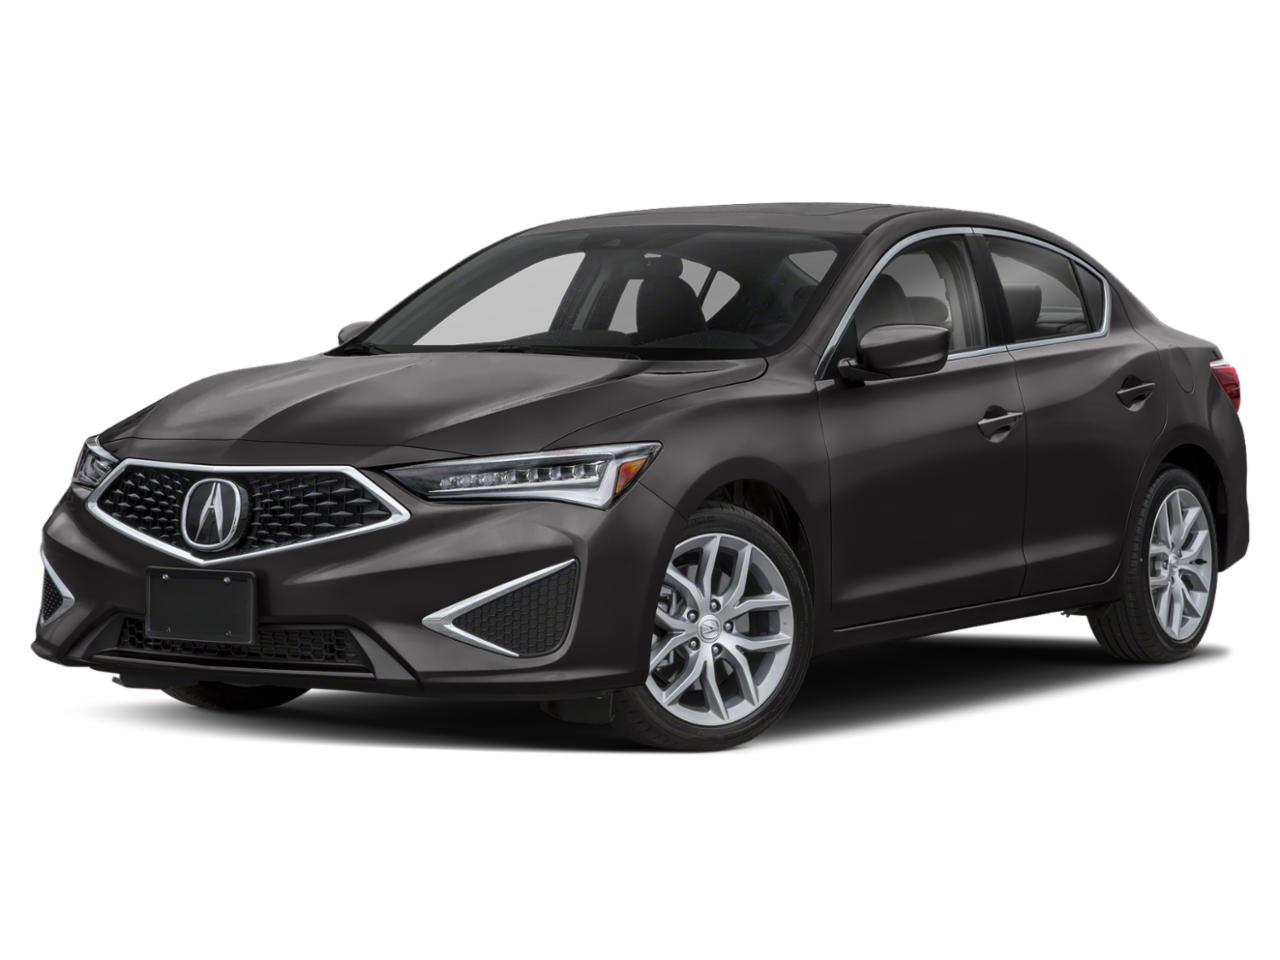 2019 Acura ILX Vehicle Photo in Pleasanton, CA 94588